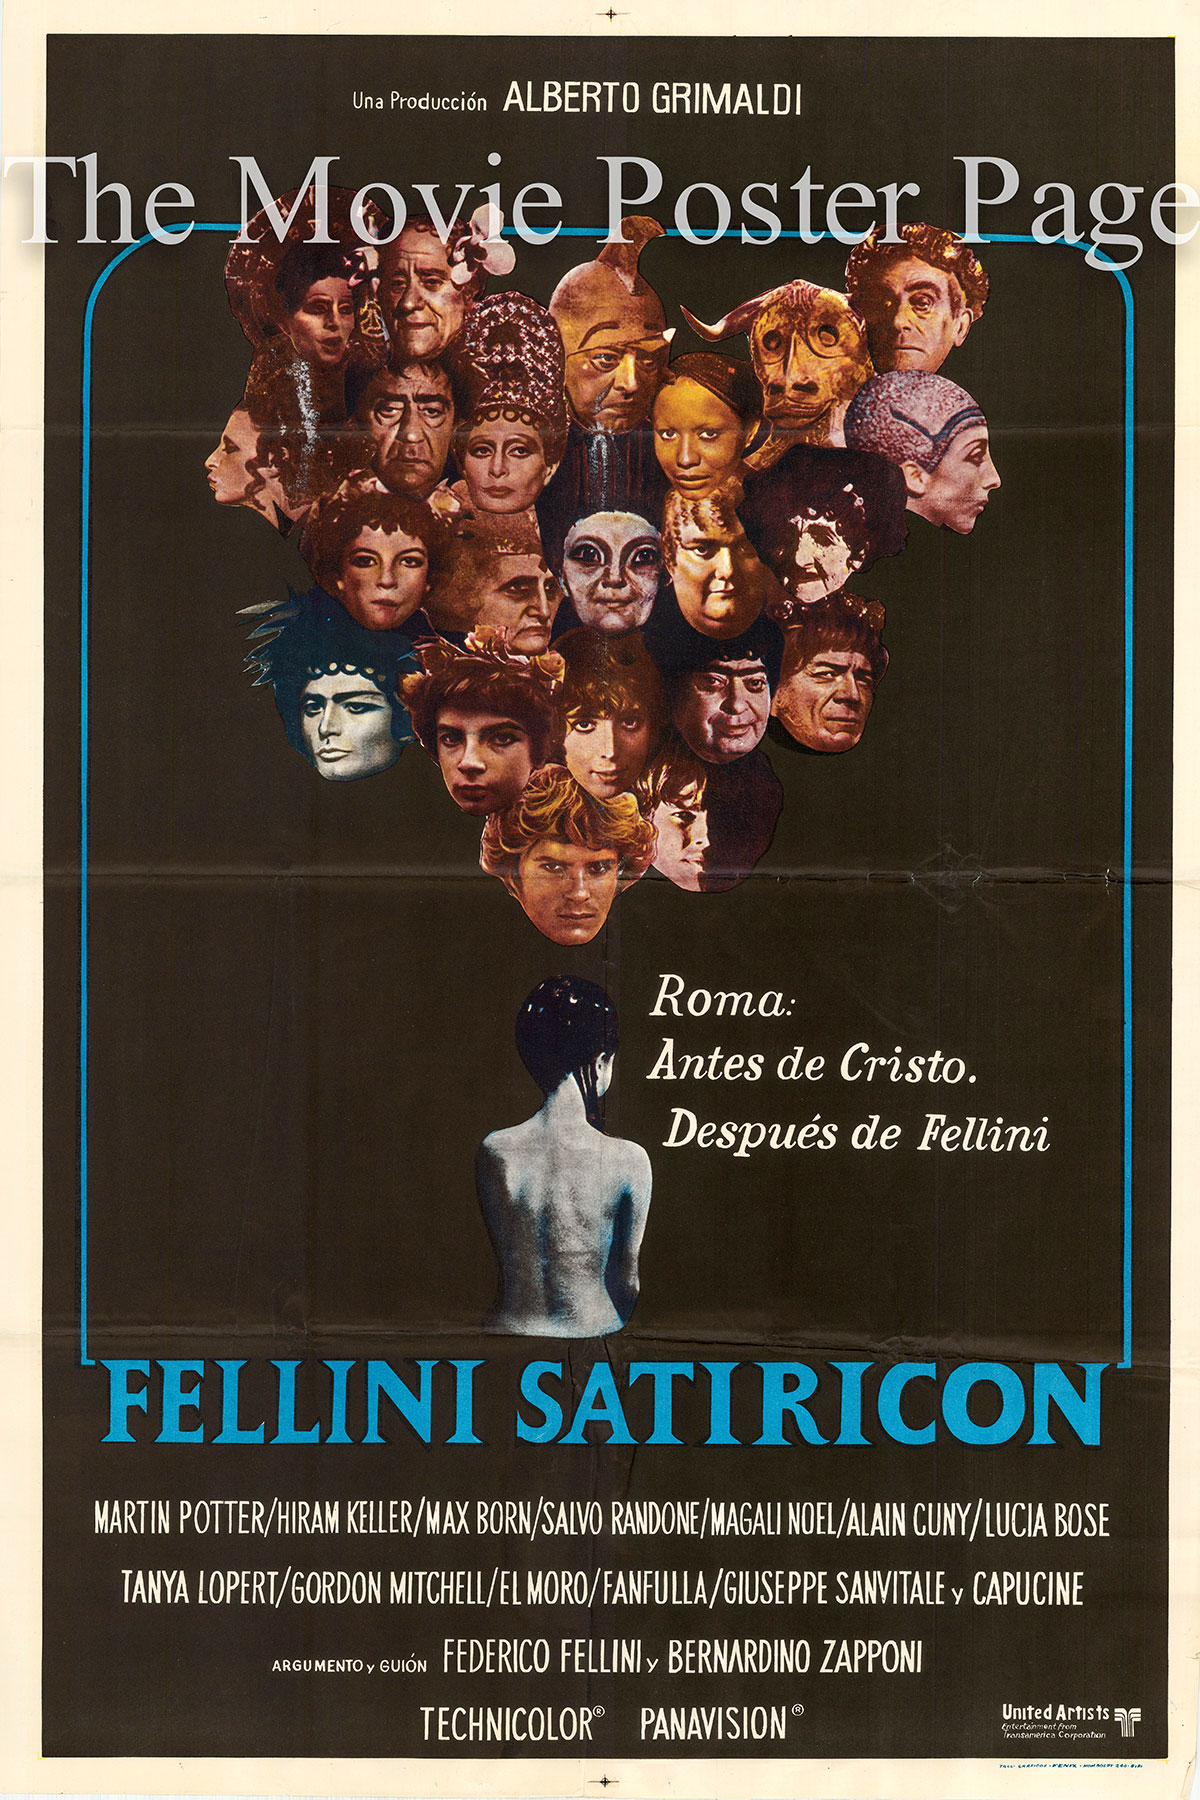 Pictured is an Argentine one-sheet poster for the 1969 Federico Fellini film Satyricon starring Martin Potter as Encolpio.